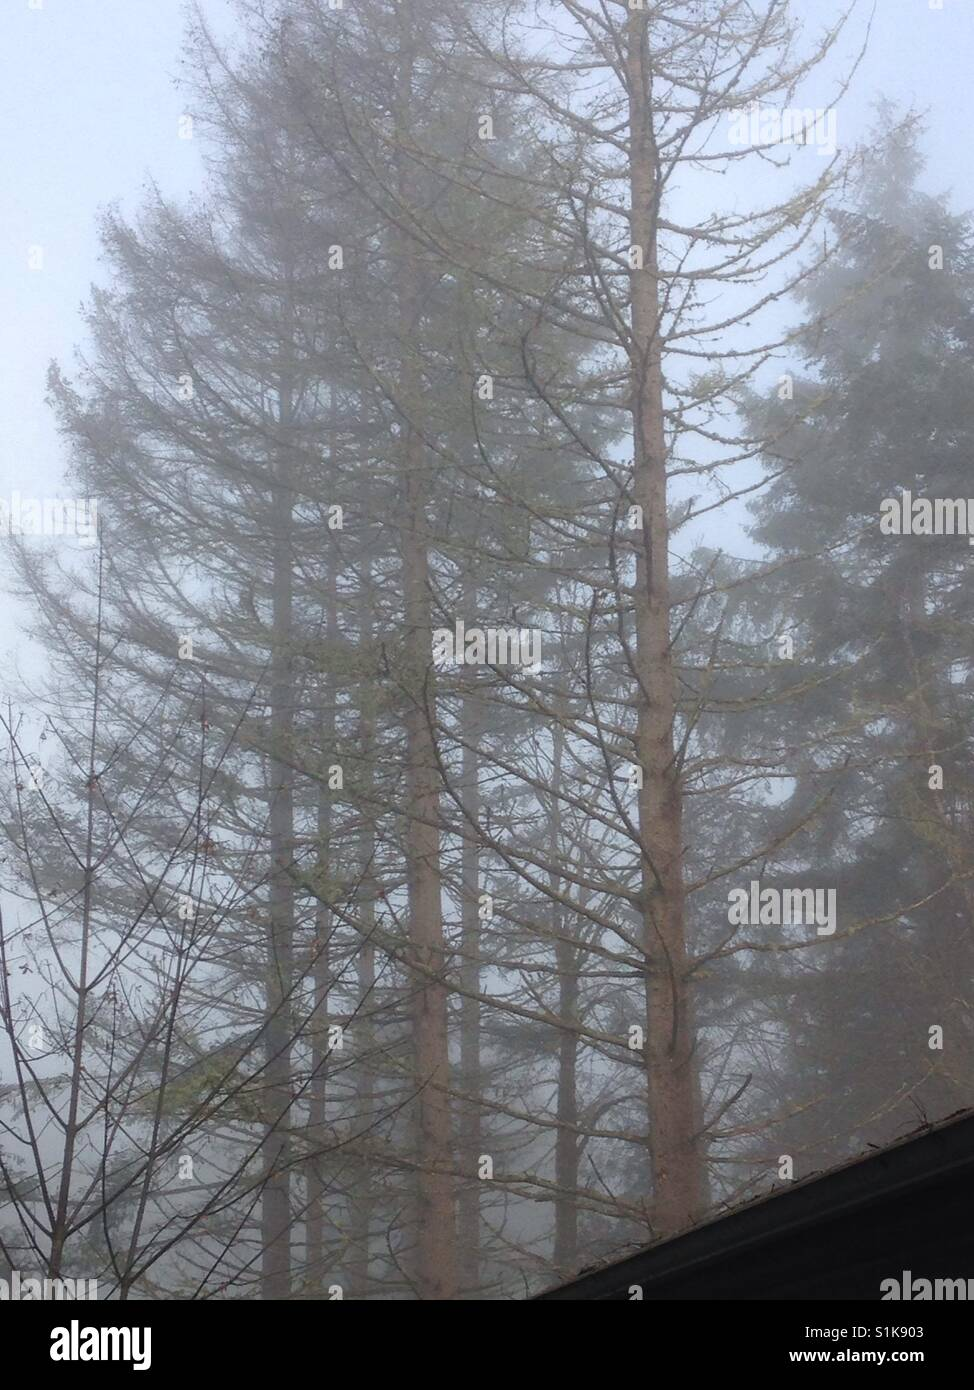 Fog surrounds evergreen trees including one dead tree looming over a house - Stock Image